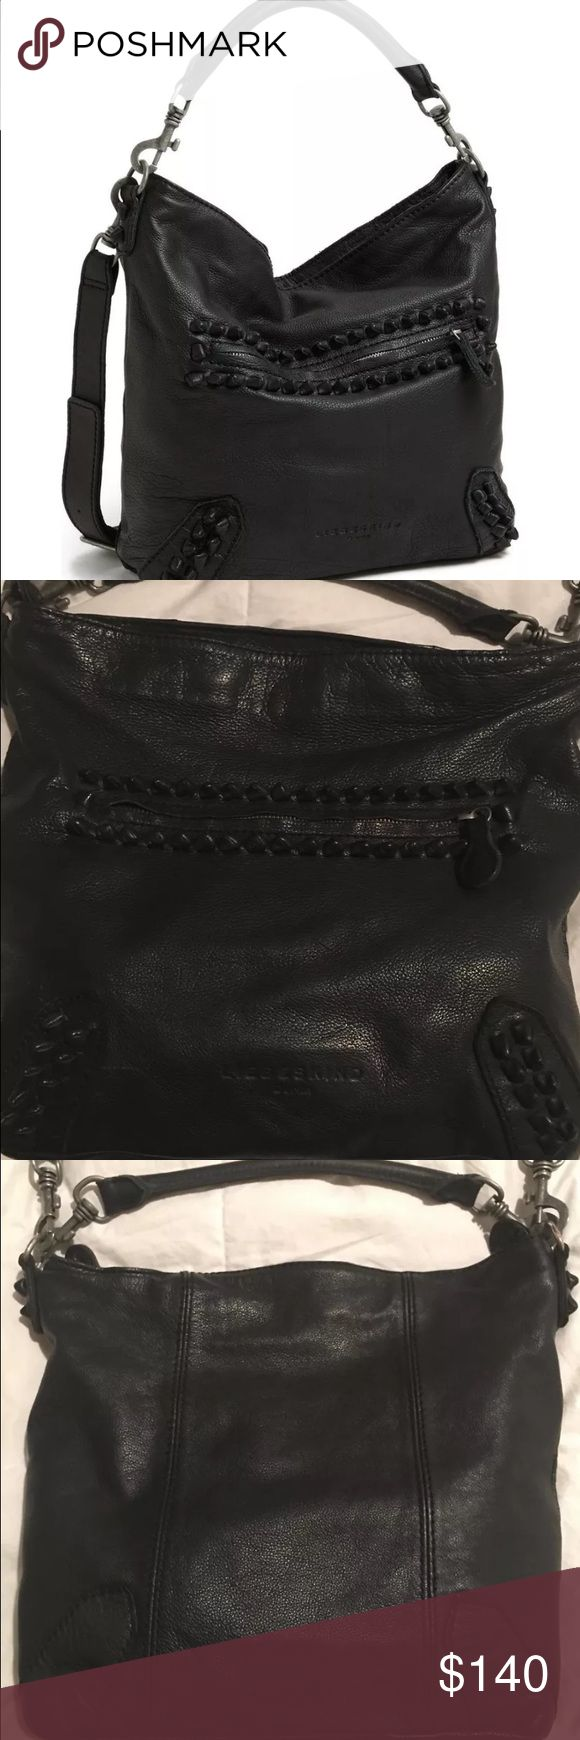 """Liebeskind Vintage Knot Leather Hobo crossbody Amazing edgy black bag, knotted leather detail, shoulder strap plus a nice wide adjustable cross body strap. Exterior zip pocket, interior zip pocket plus 3 slip pockets. Small tear in inside lining, not noticeable. A little bit of wear on some hardware but this bag was just professionally conditioned so it's in great shape. Measures flat: 15' wide 12.75"""" tall, 4.25"""" wide (from bottom). Liebeskind Bags Shoulder Bags"""